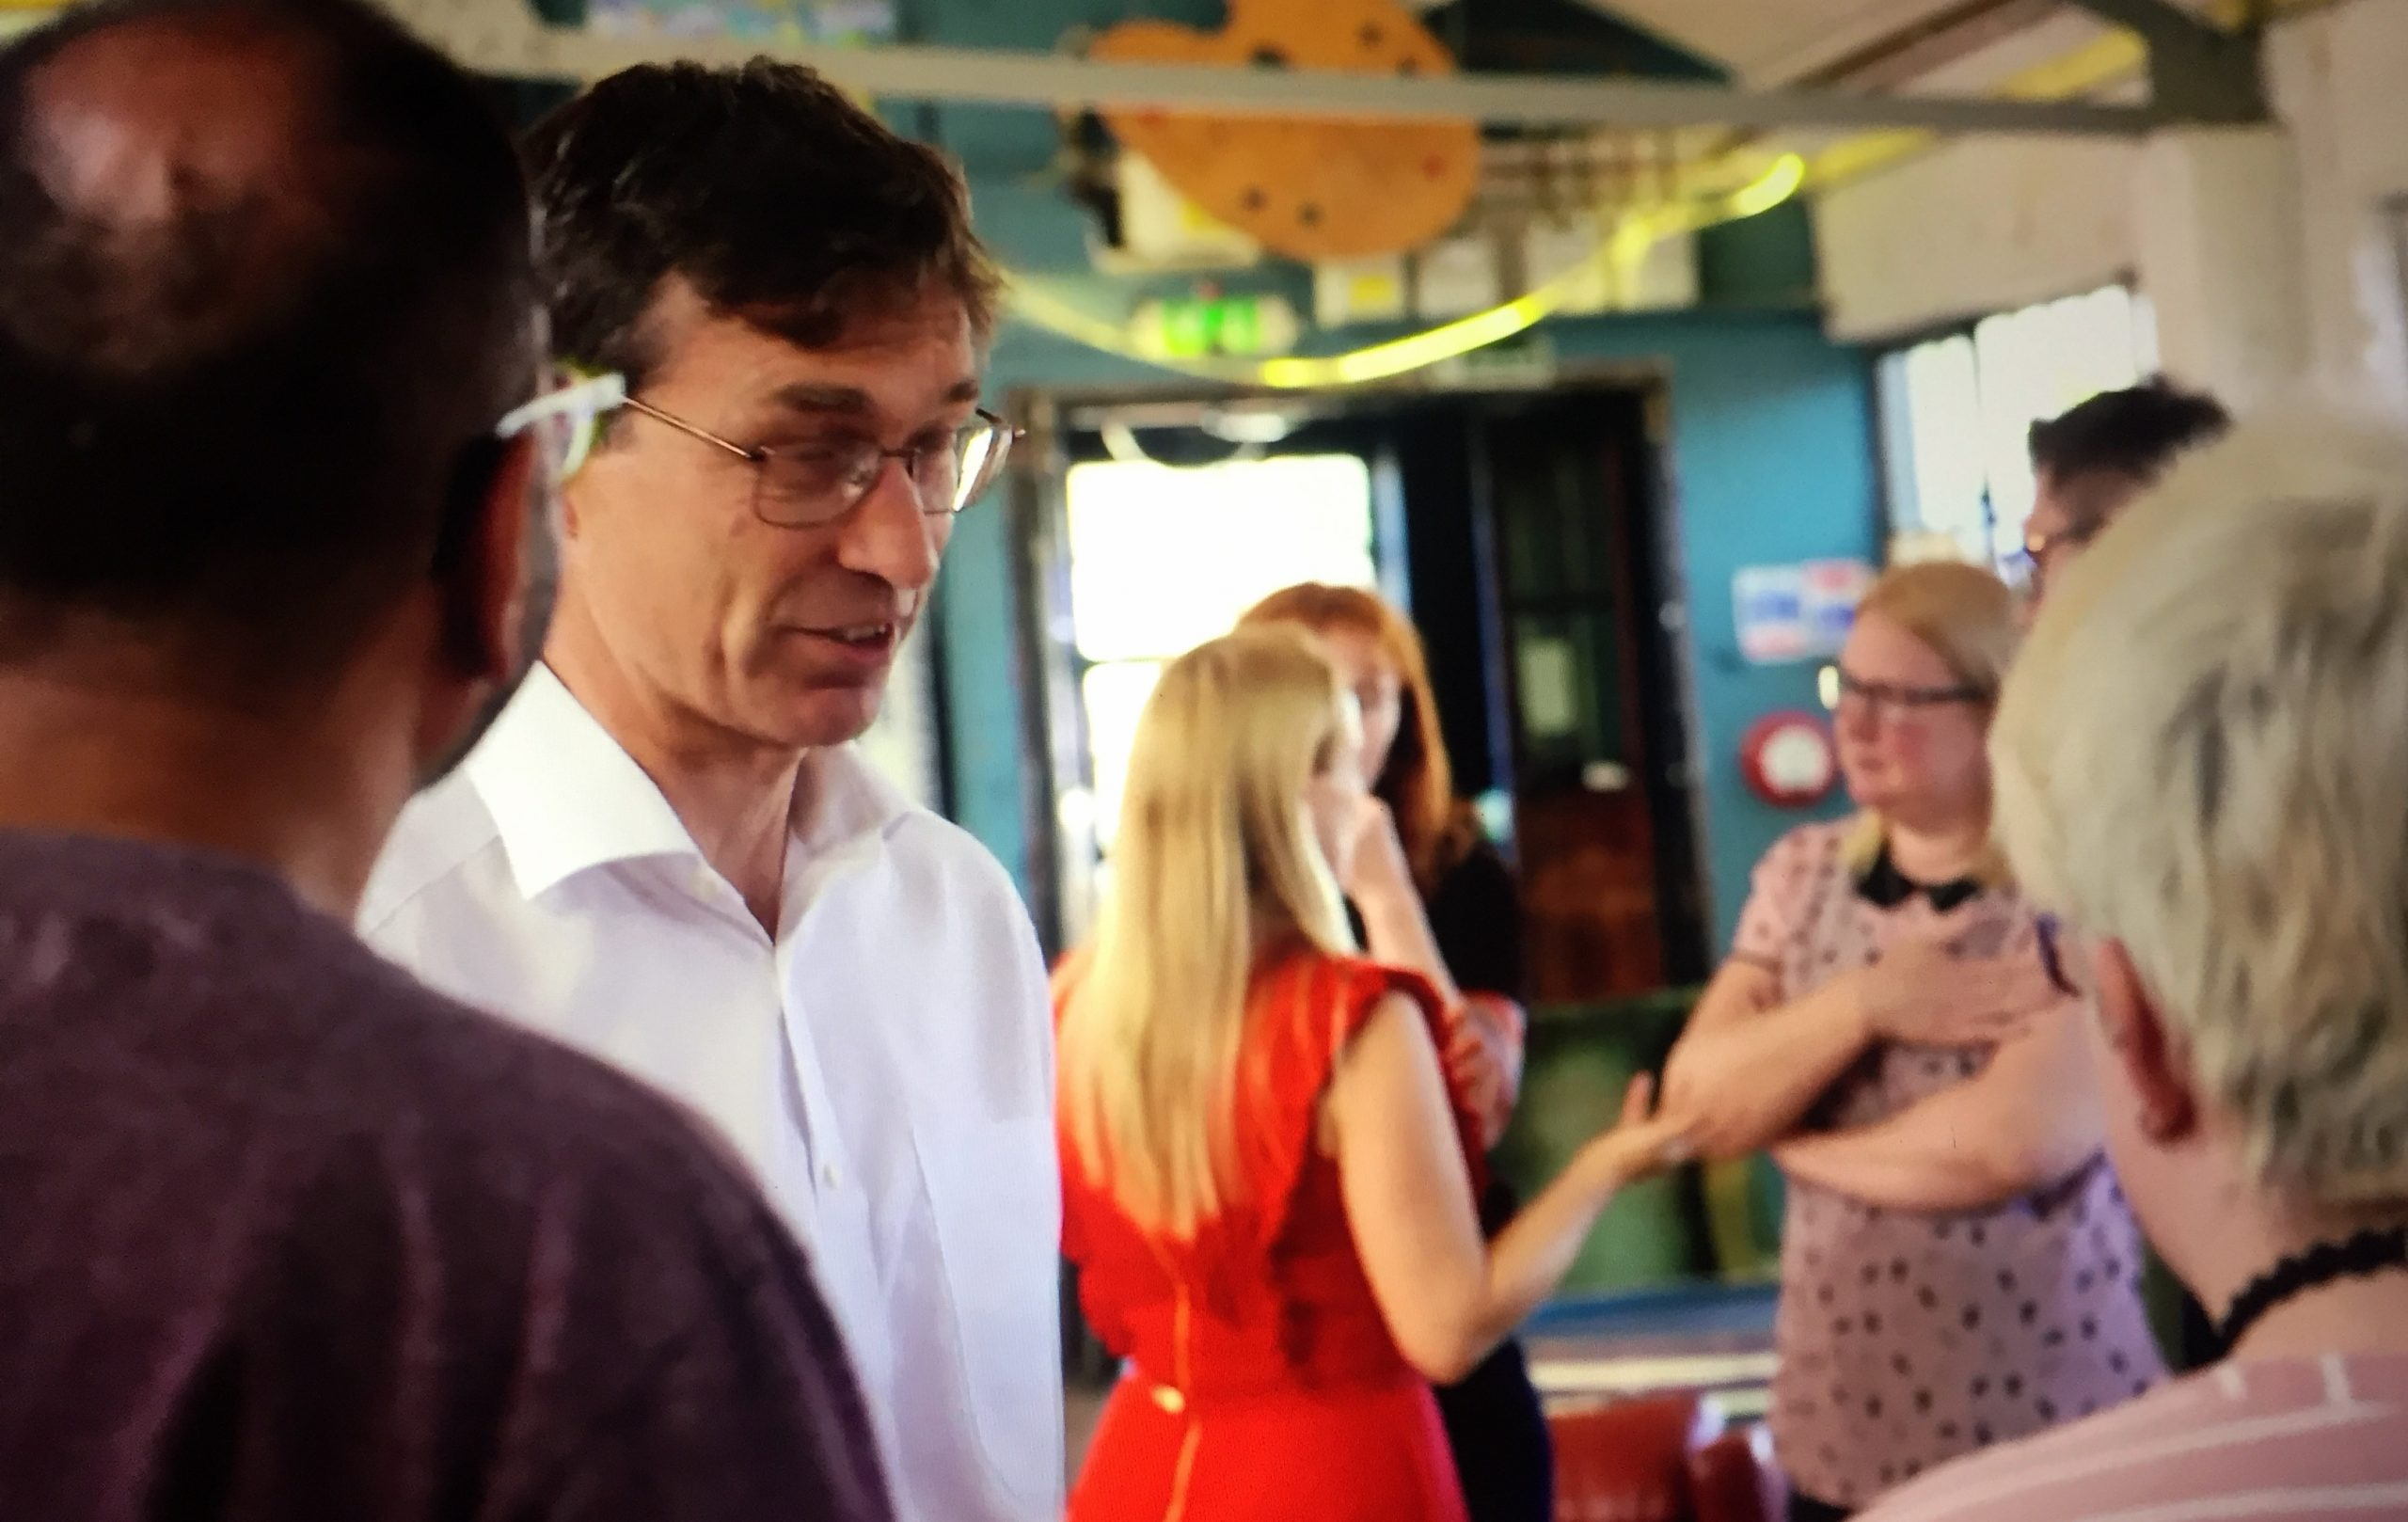 Prof David Walsh and Dr Joanne Stocks talk to volunteers on Channel 4 TV program How To Beat Pain